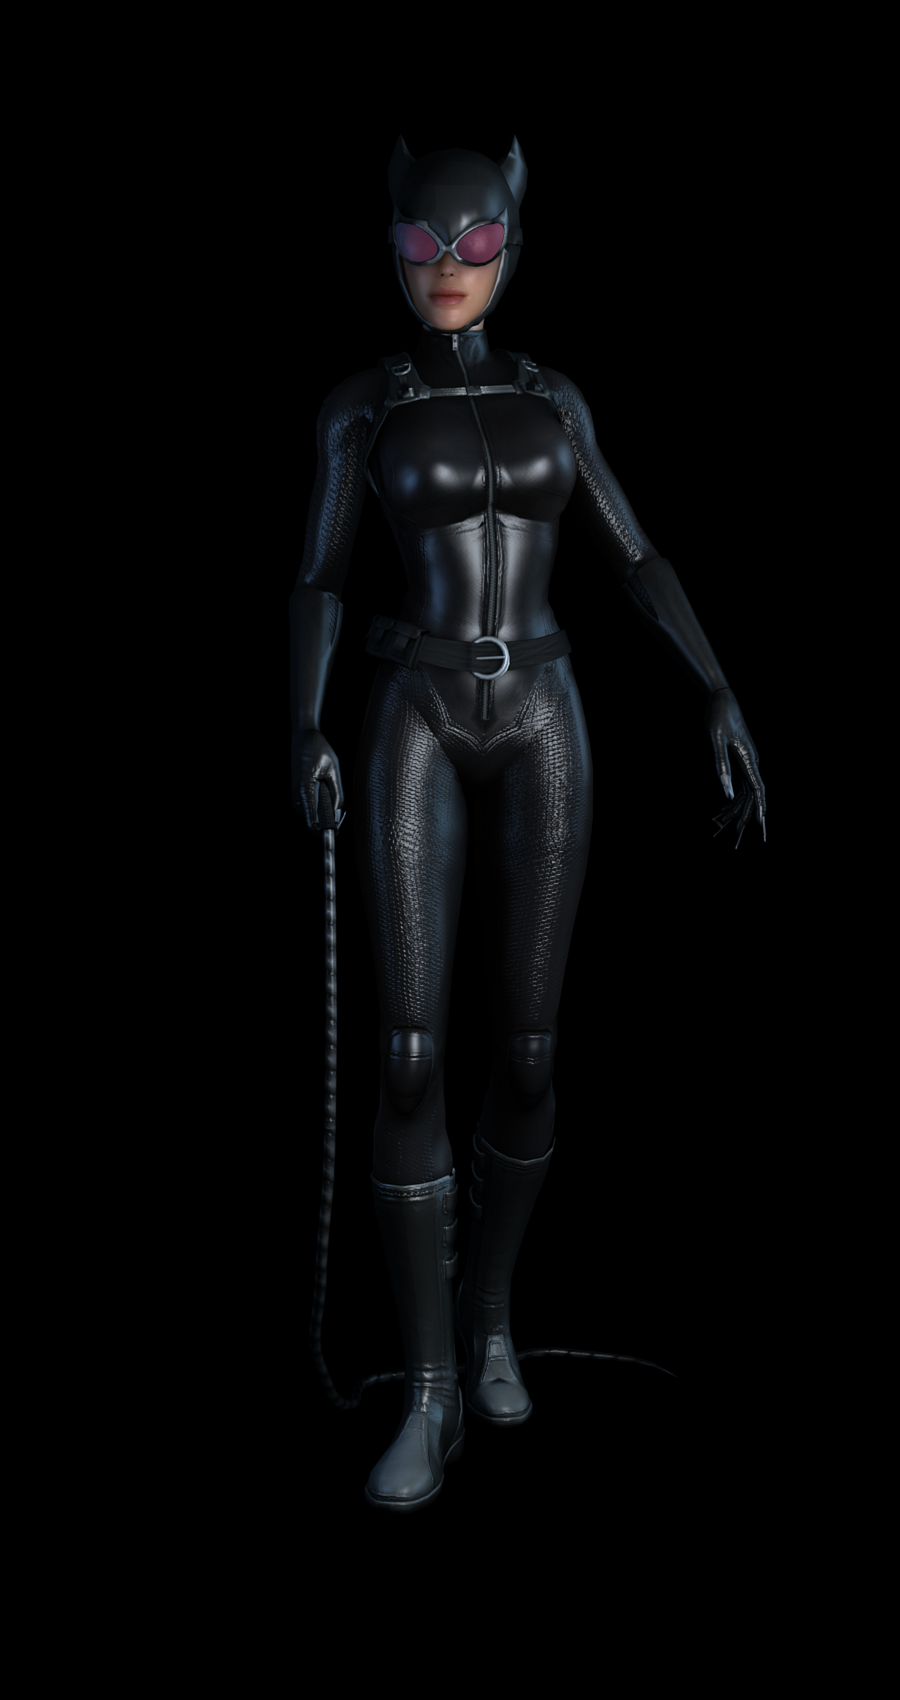 Catwoman by legendg85